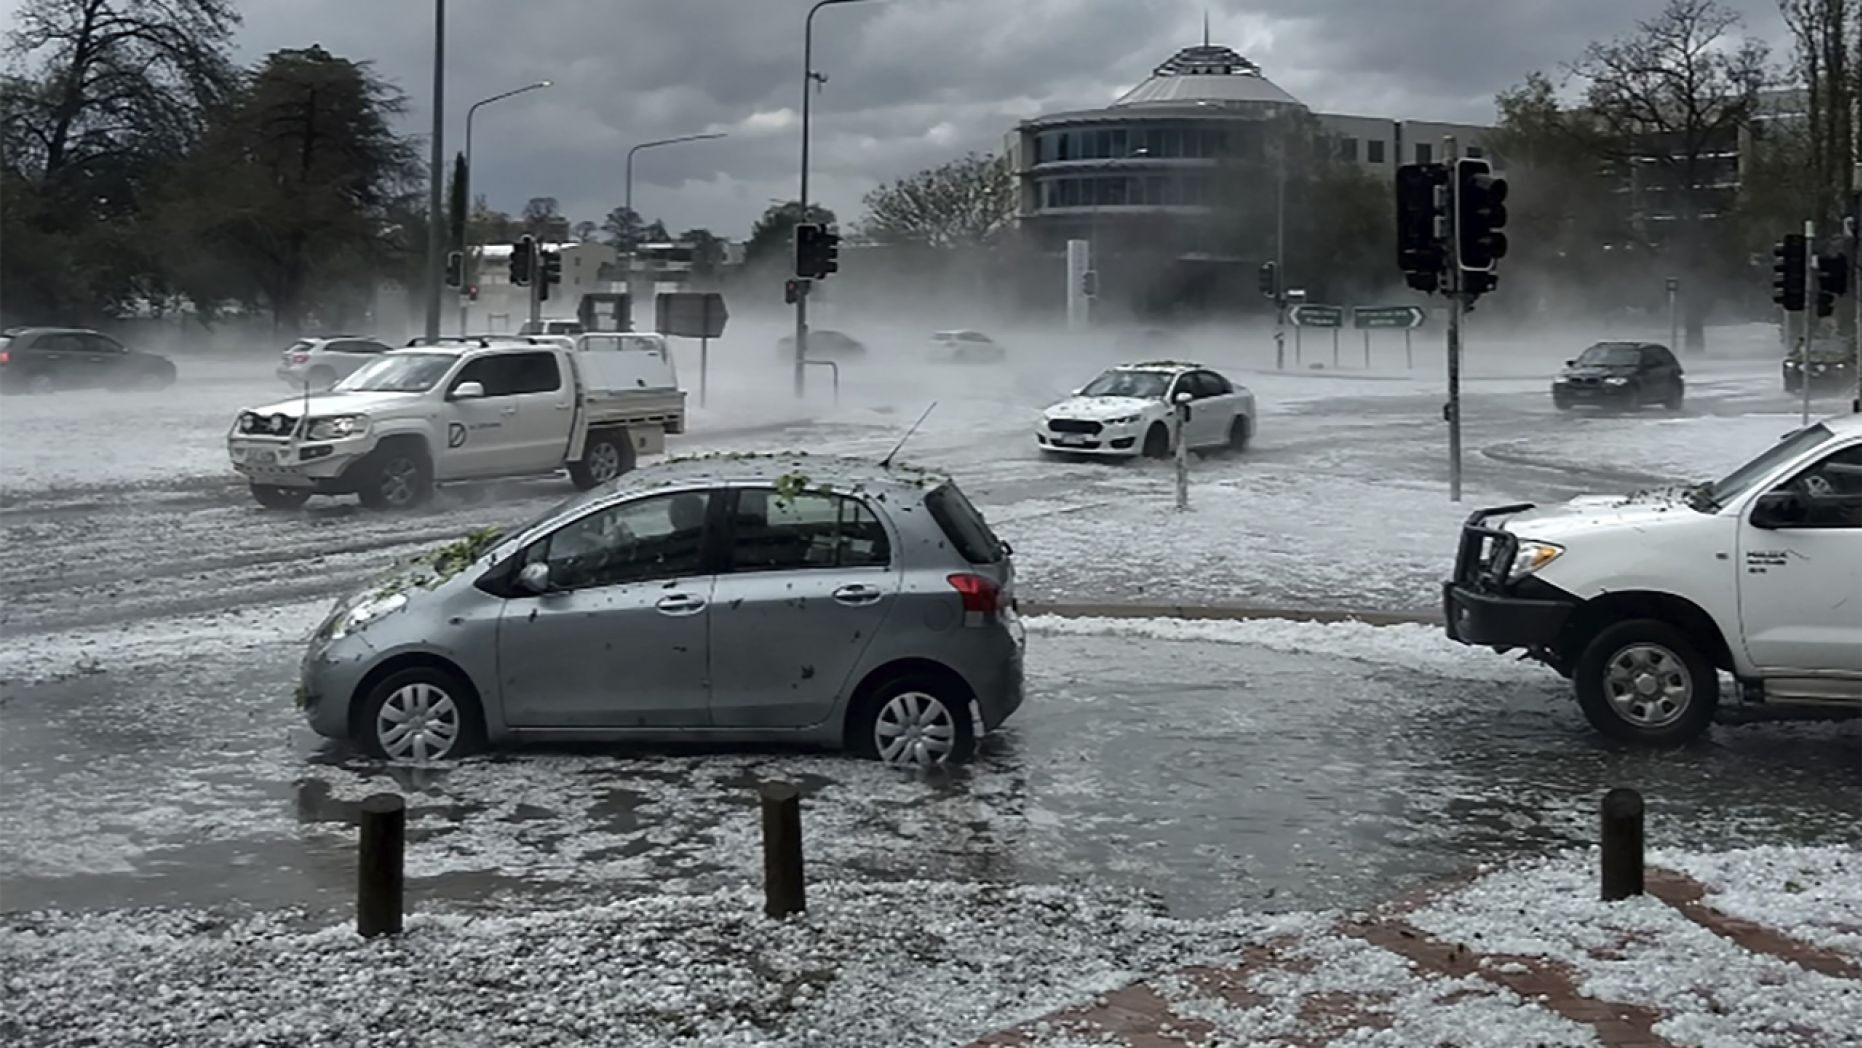 Hail covers vehicles in an intersection Monday, Jan. 20, 2020, in Canberra, Australia.